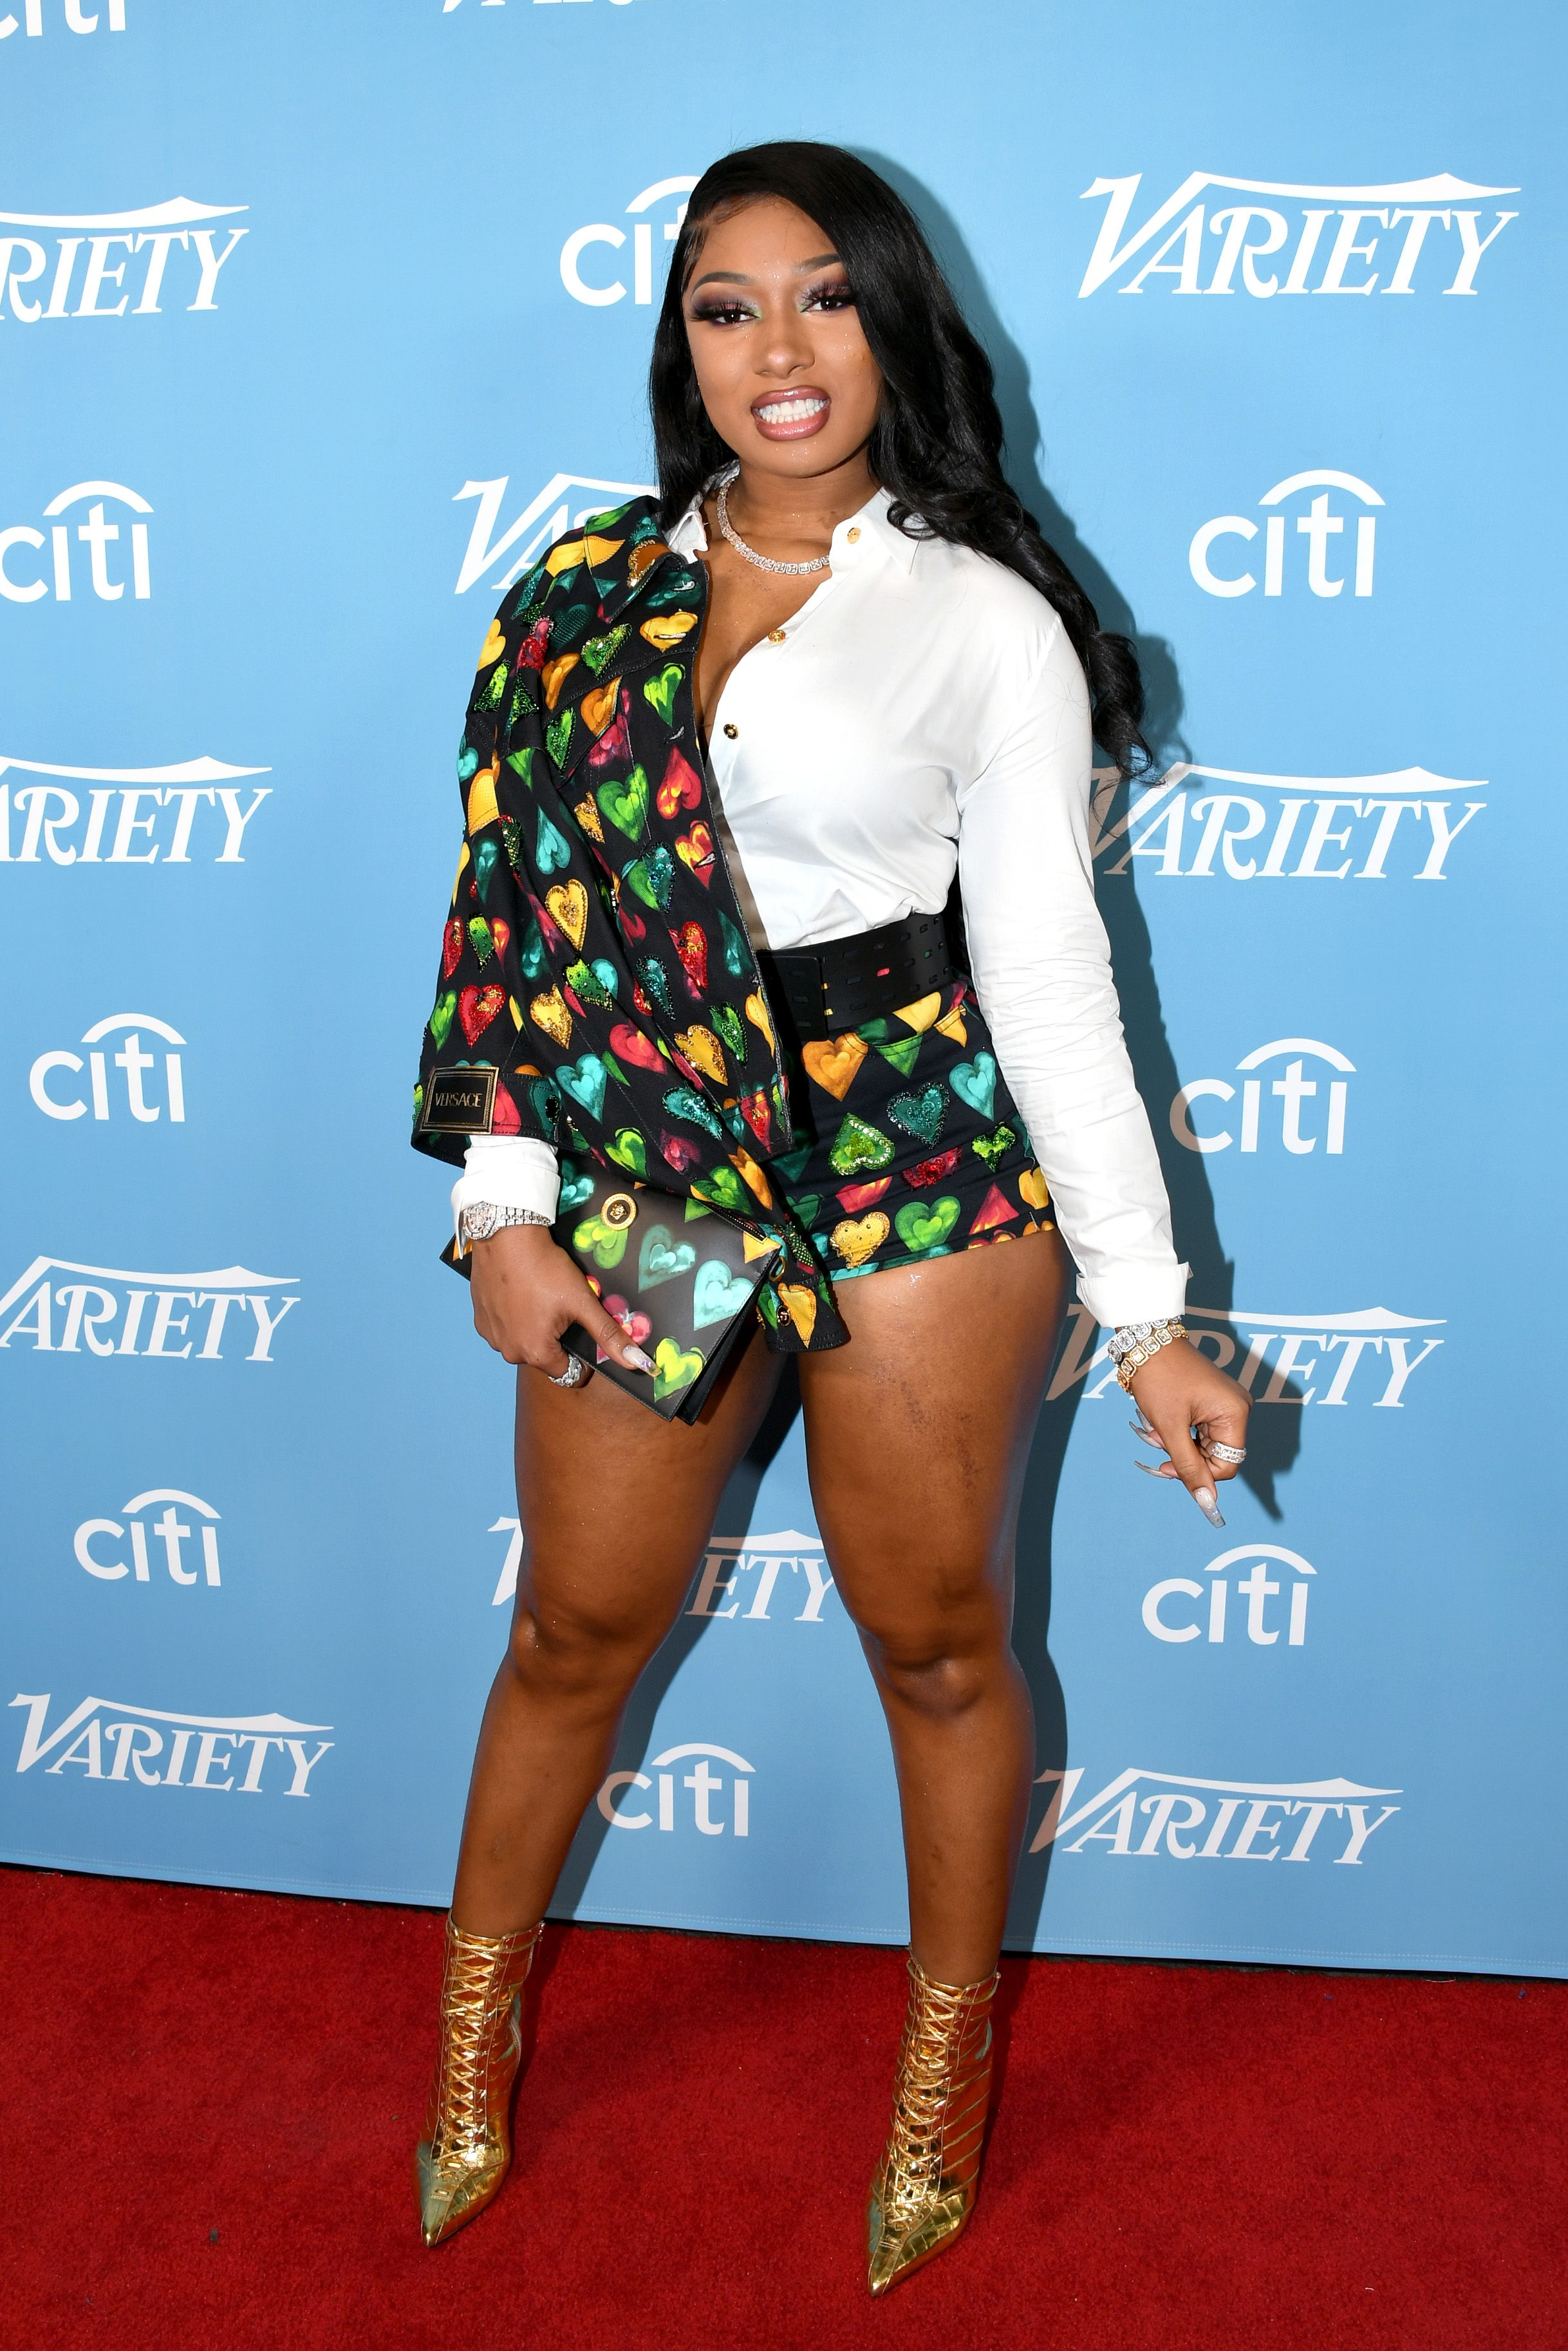 Megan Thee Stallion arrives on the red carpet for Variety's Hitmakers Brunch at Soho House on December 07, 2019 | Photo: Getty Images